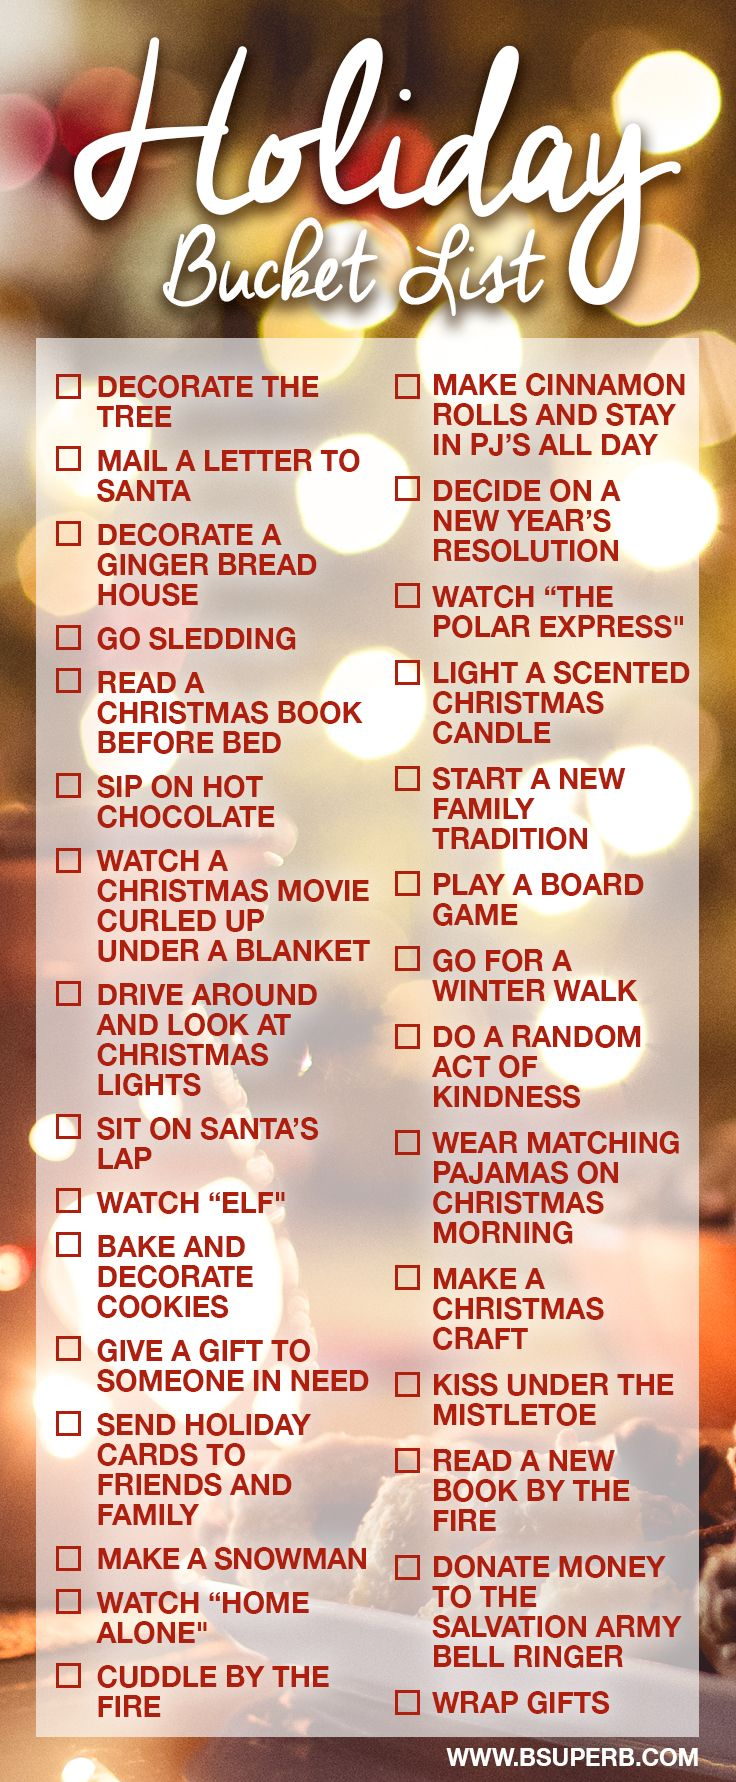 4c7cecfa94 Holiday Bucket List | Holiday Ideas | Christmas decorations ...